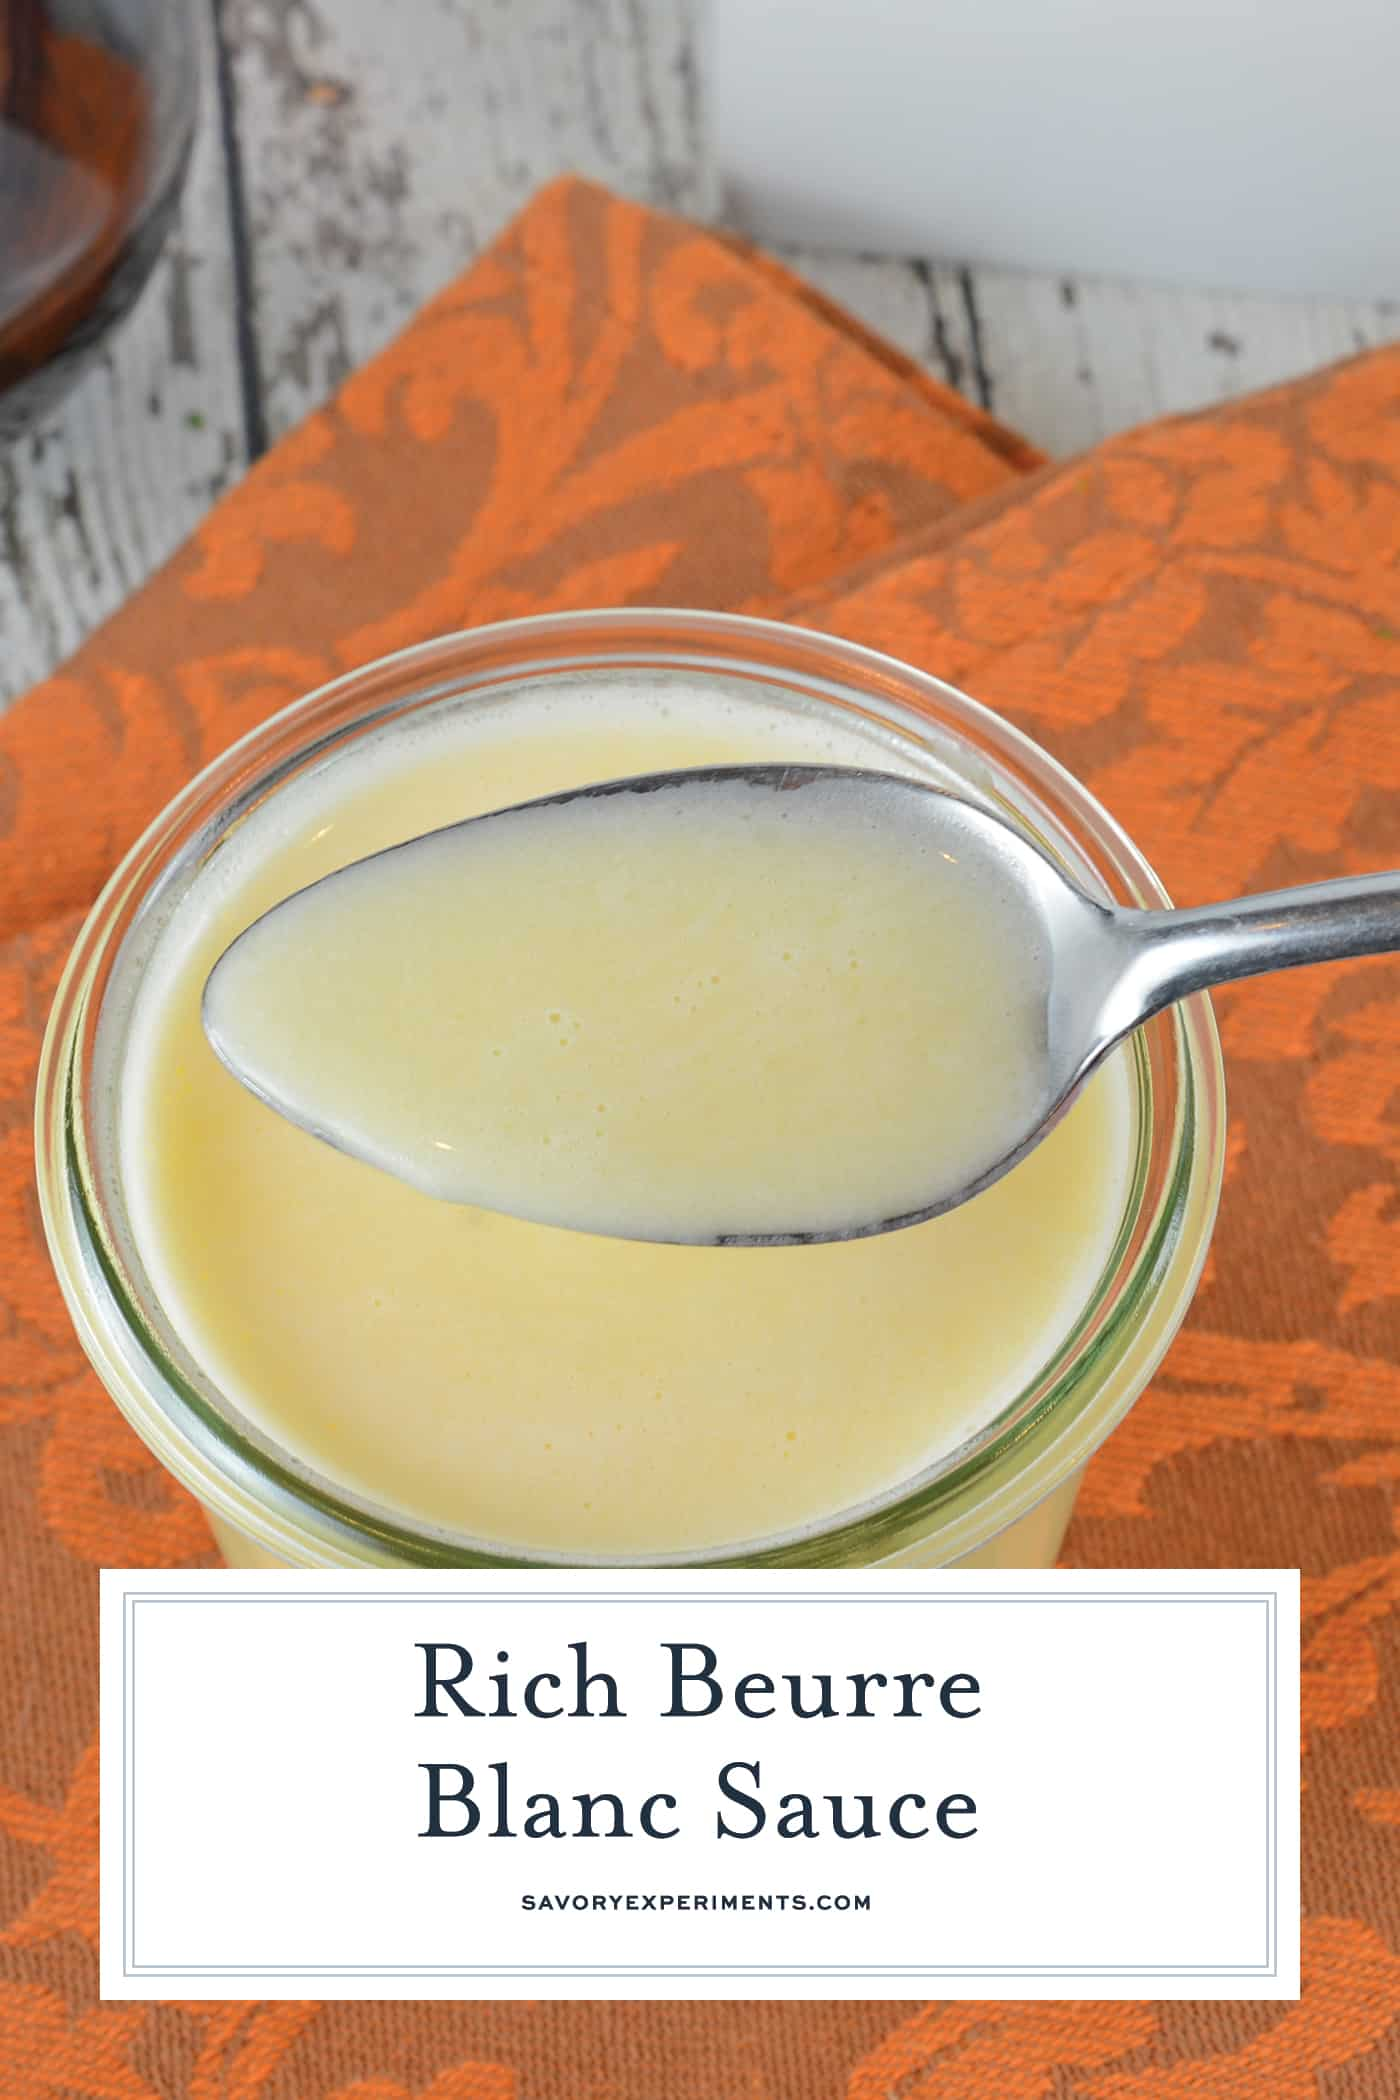 Beurre Blanc is a classic French sauce translated as